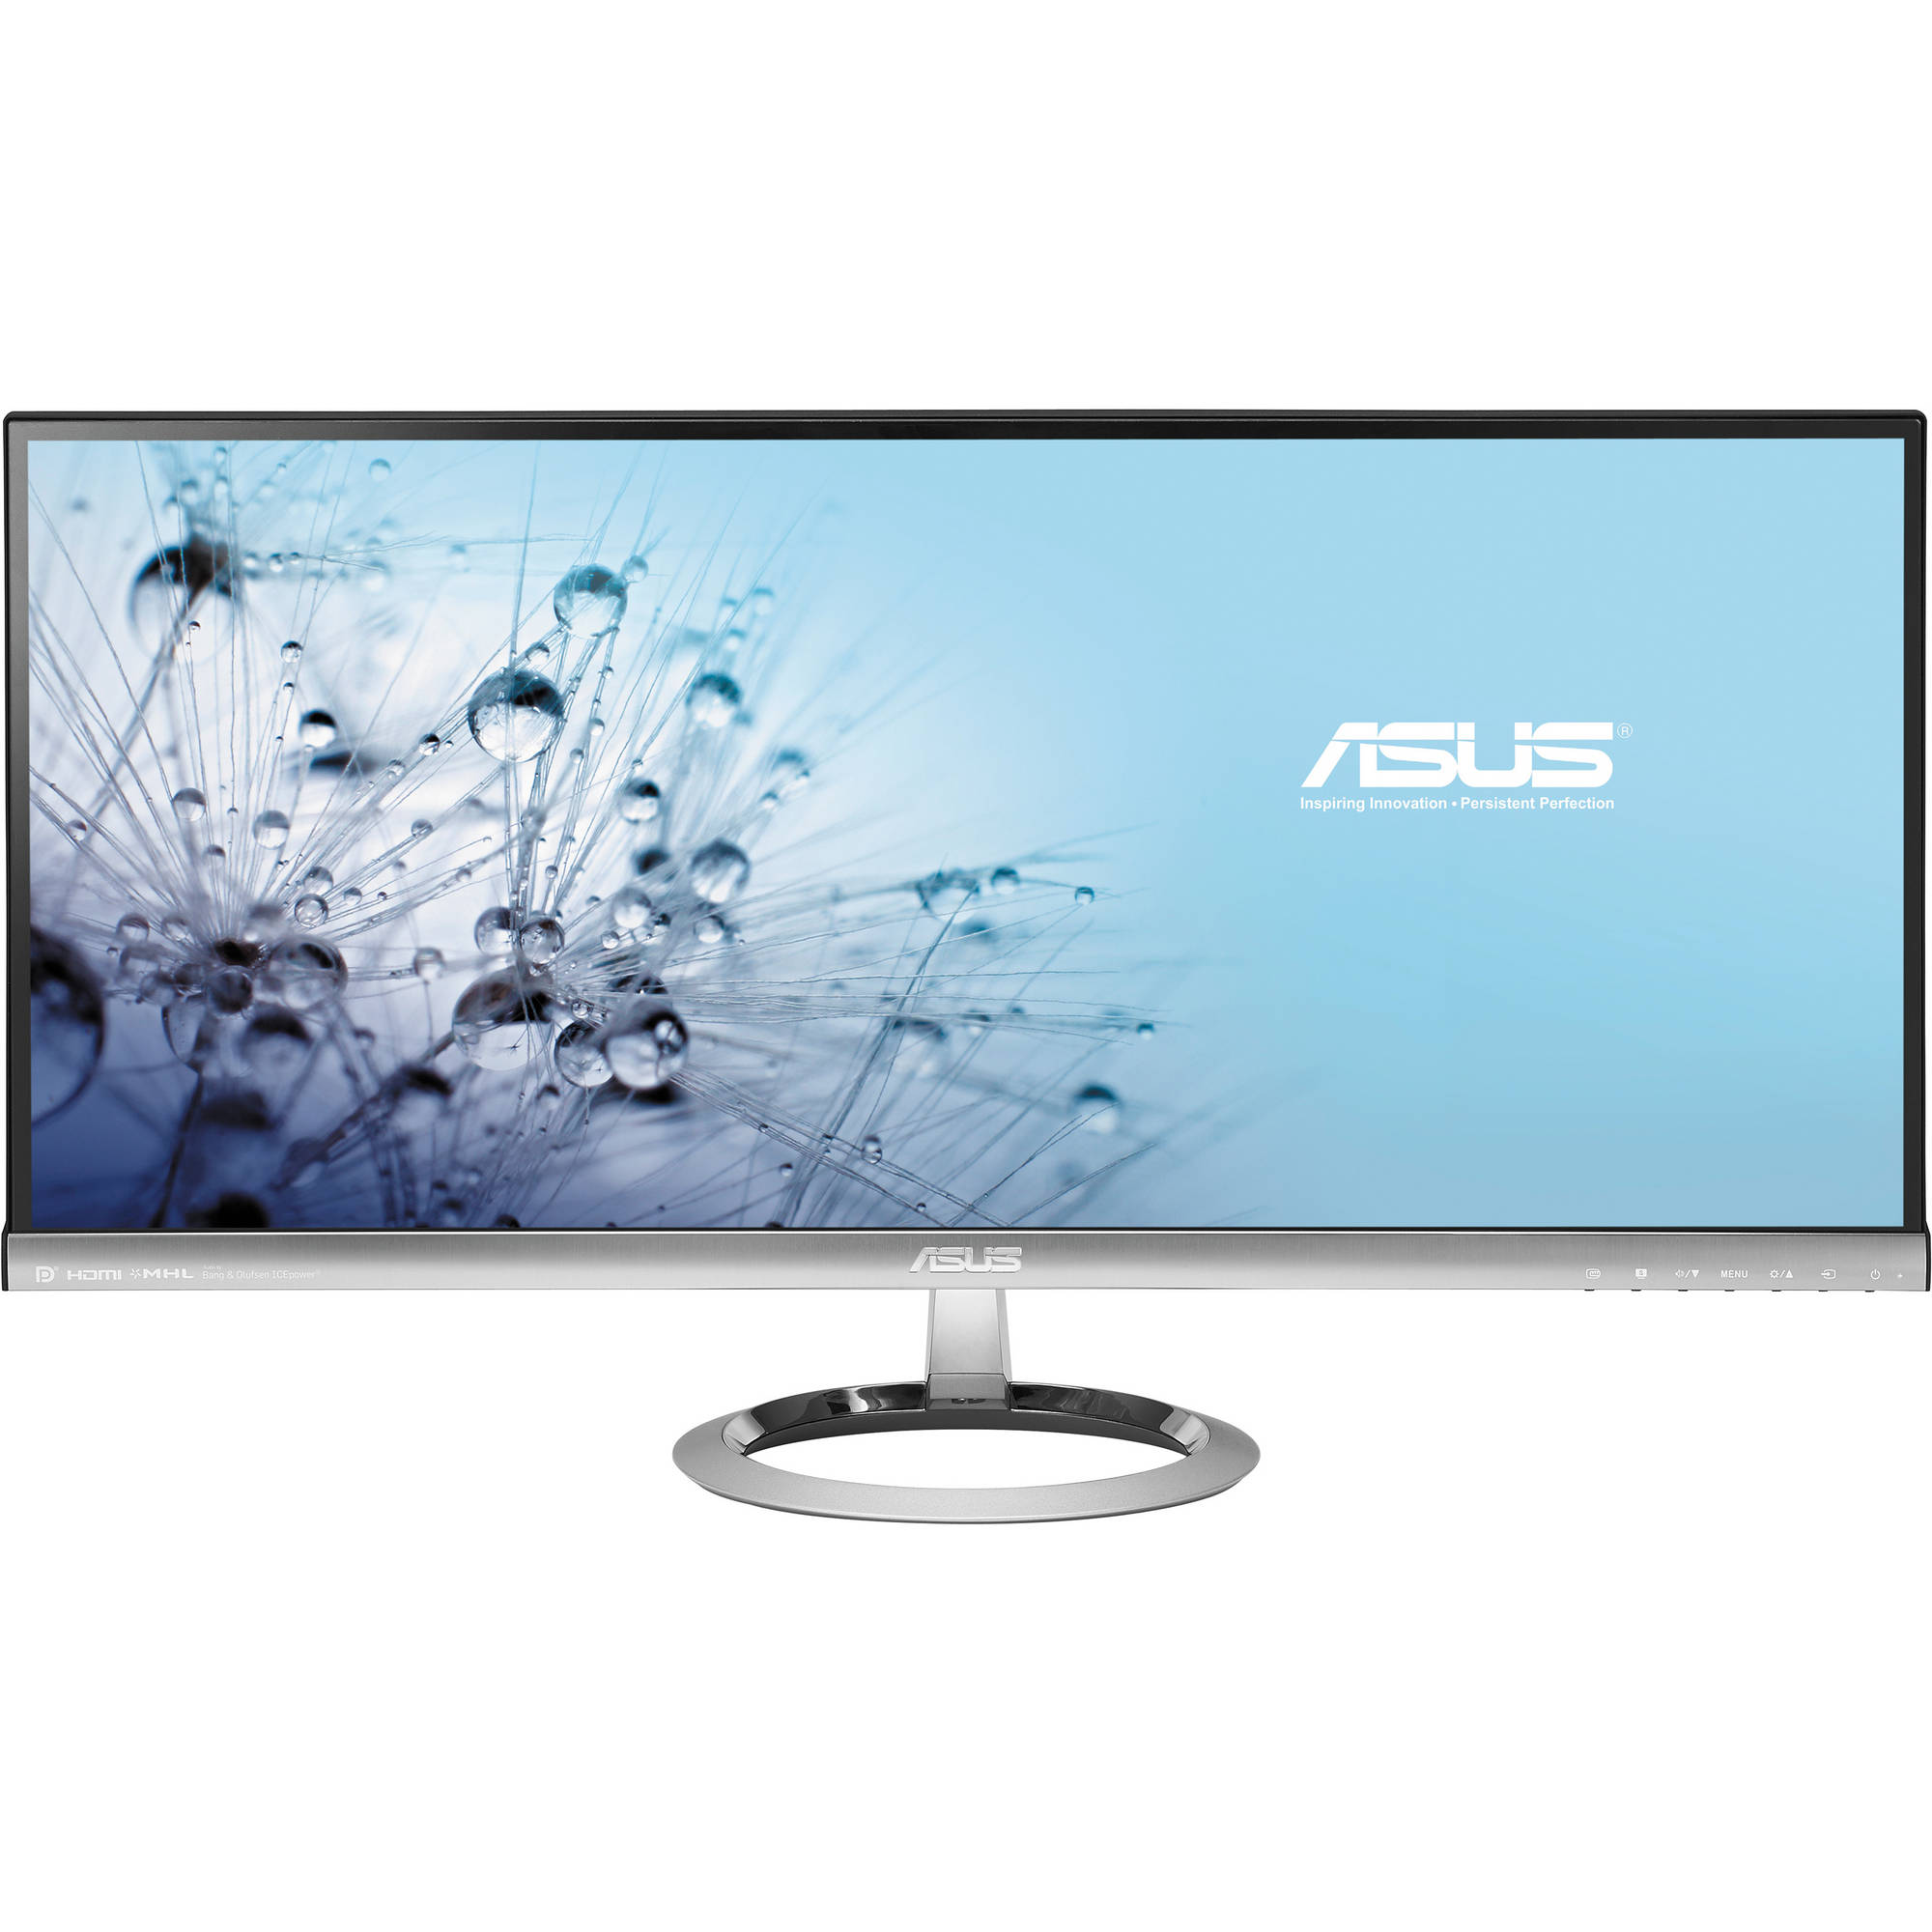 Refurbished - Asus MX299Q 29 IPS LED Backlit Monitor 2560x1080 5ms 0.8mm Bezel Thickness